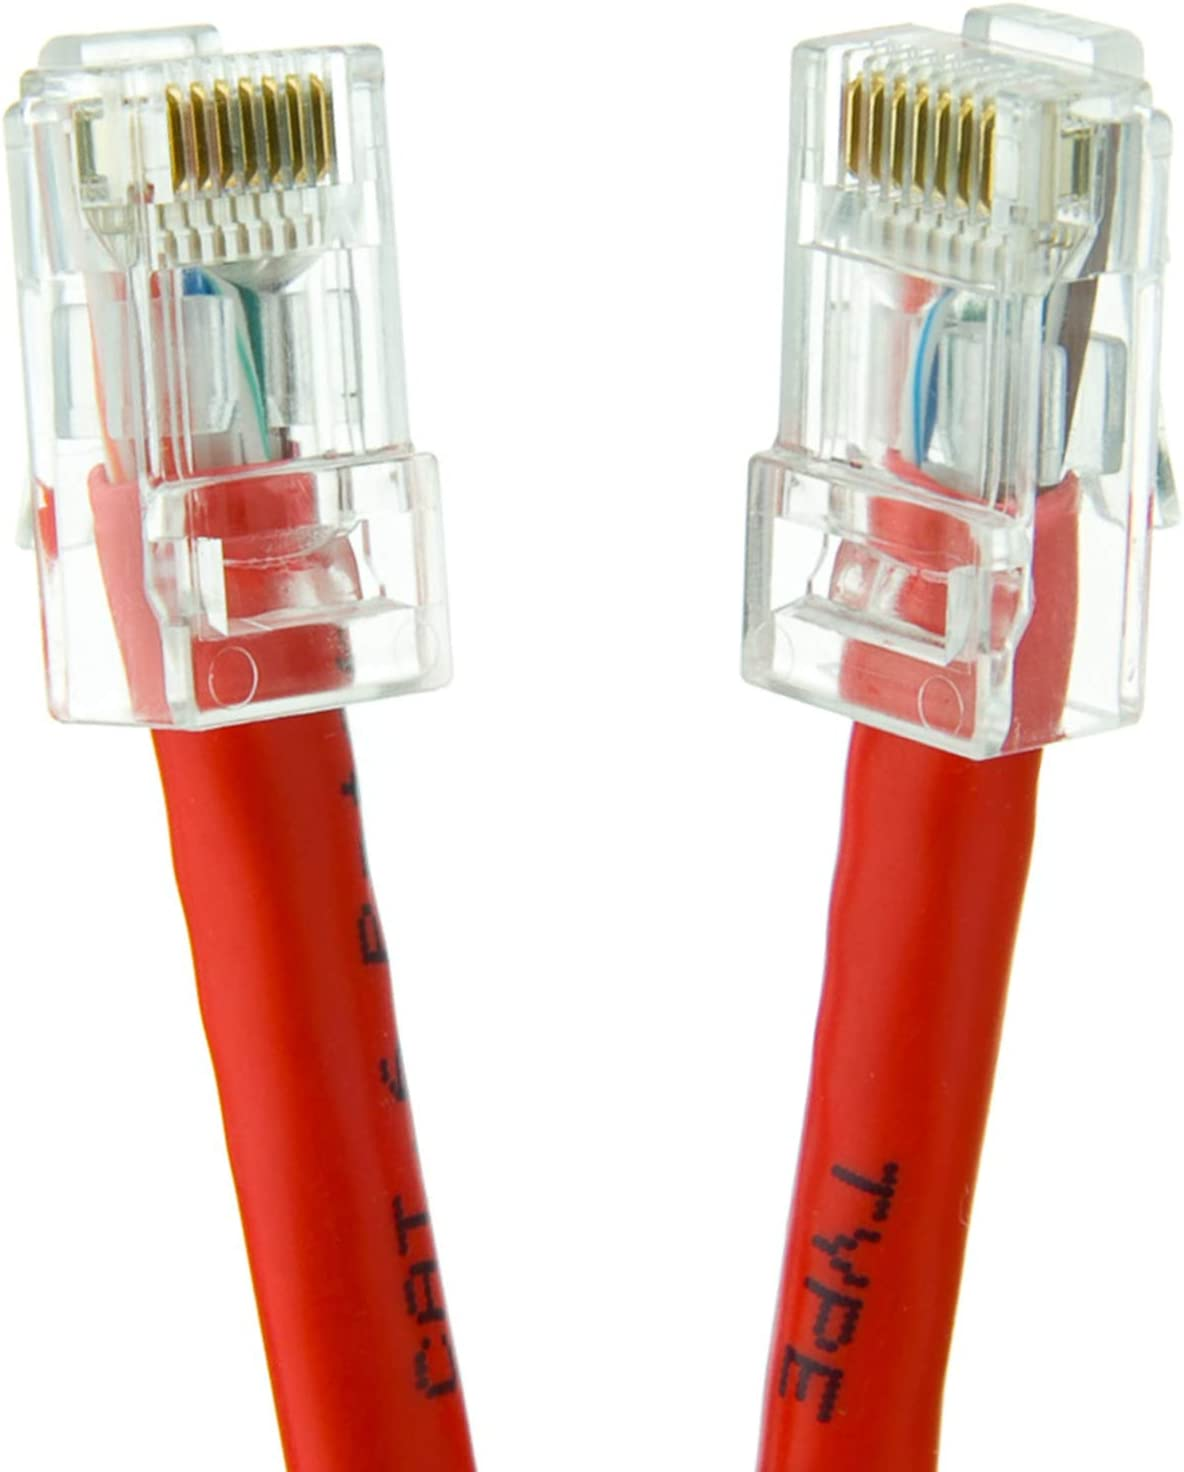 20-Pack - 35 Feet 24AWG Network Cable with Gold Plated RJ45 Non-Booted Connector 350MHz GOWOS Cat5e Ethernet Cable 1Gigabit//Sec High Speed LAN Internet//Patch Cable Red